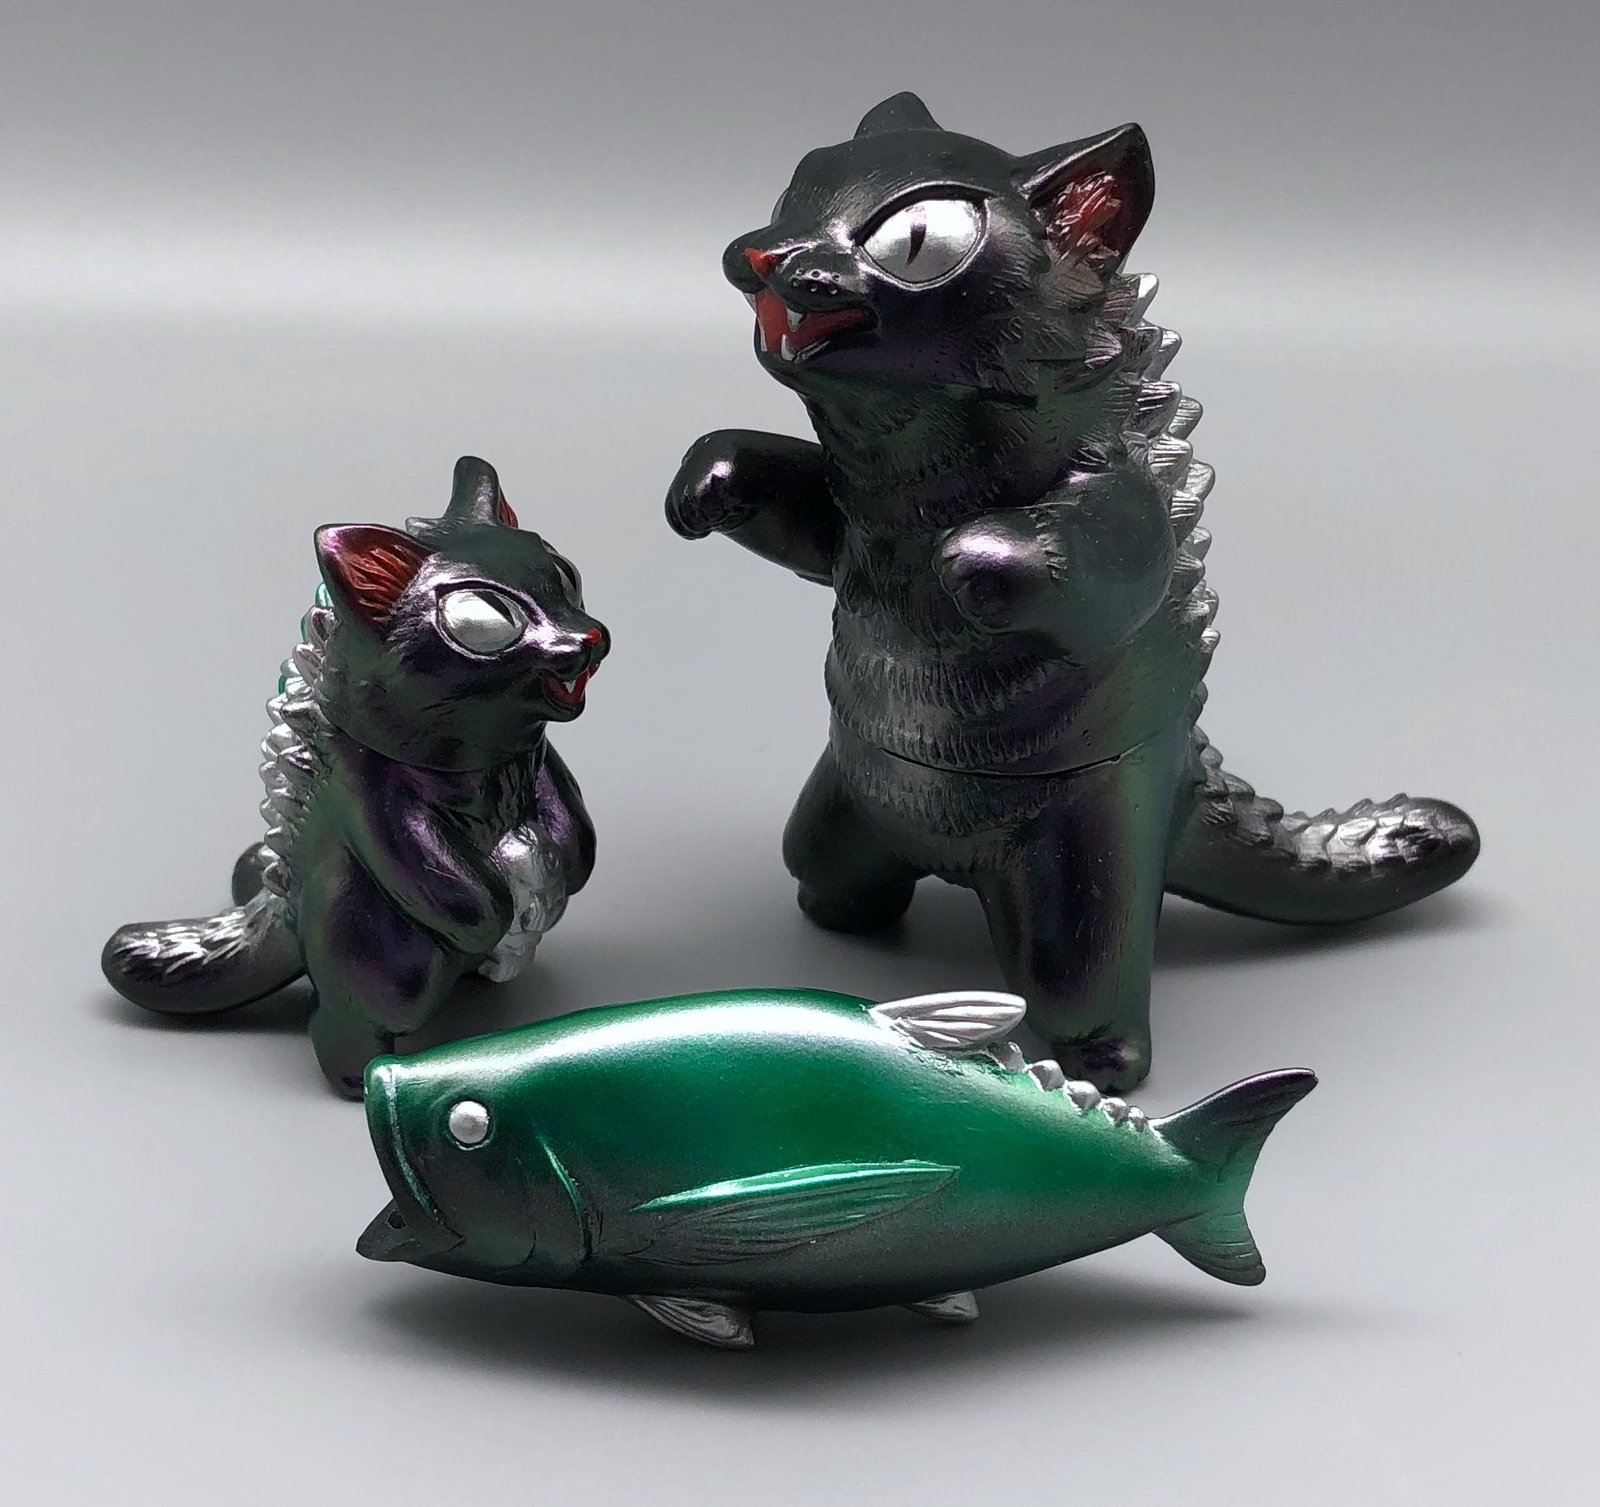 MaxToy Color-Shifting Metallic Purple/Green Negora, Micro Negora, and Fish